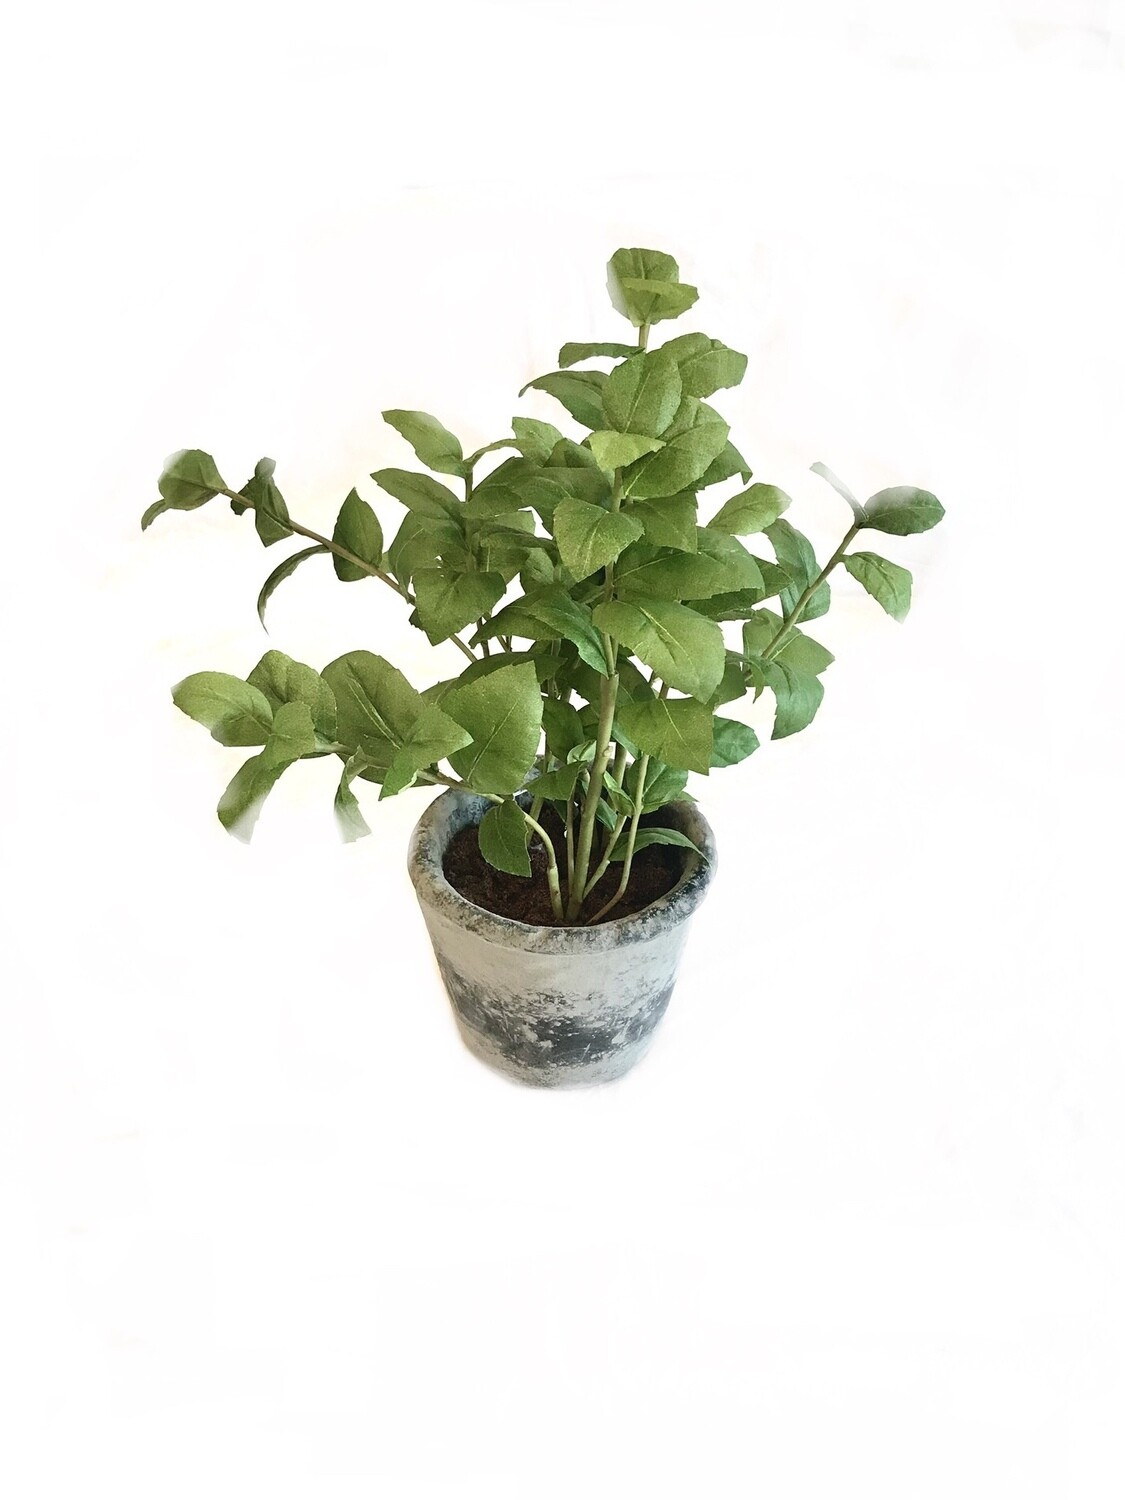 Potted herb large Basil